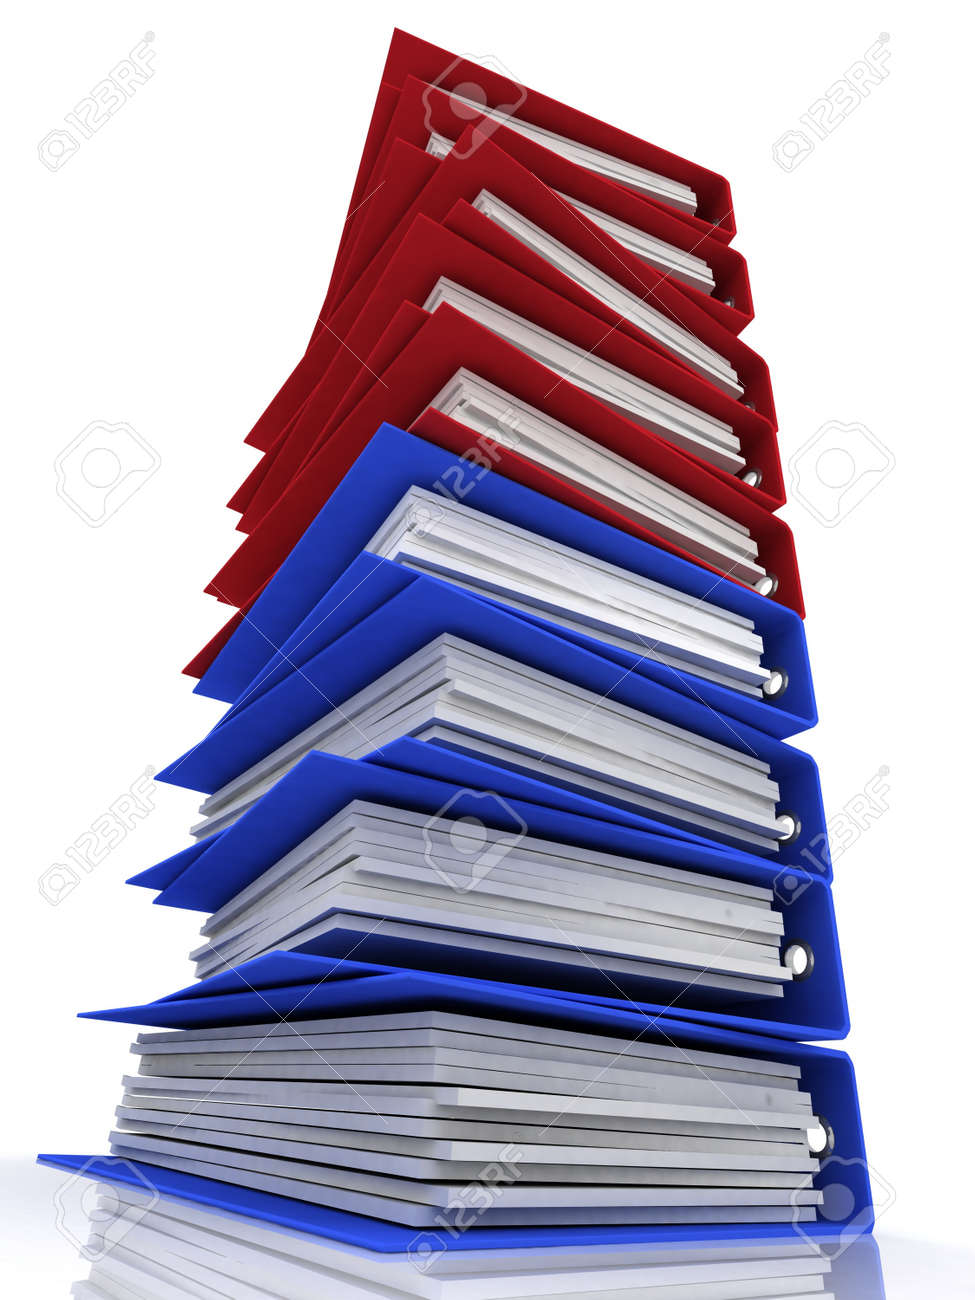 Isolated folders for papers on a white background Stock Photo - 11895513